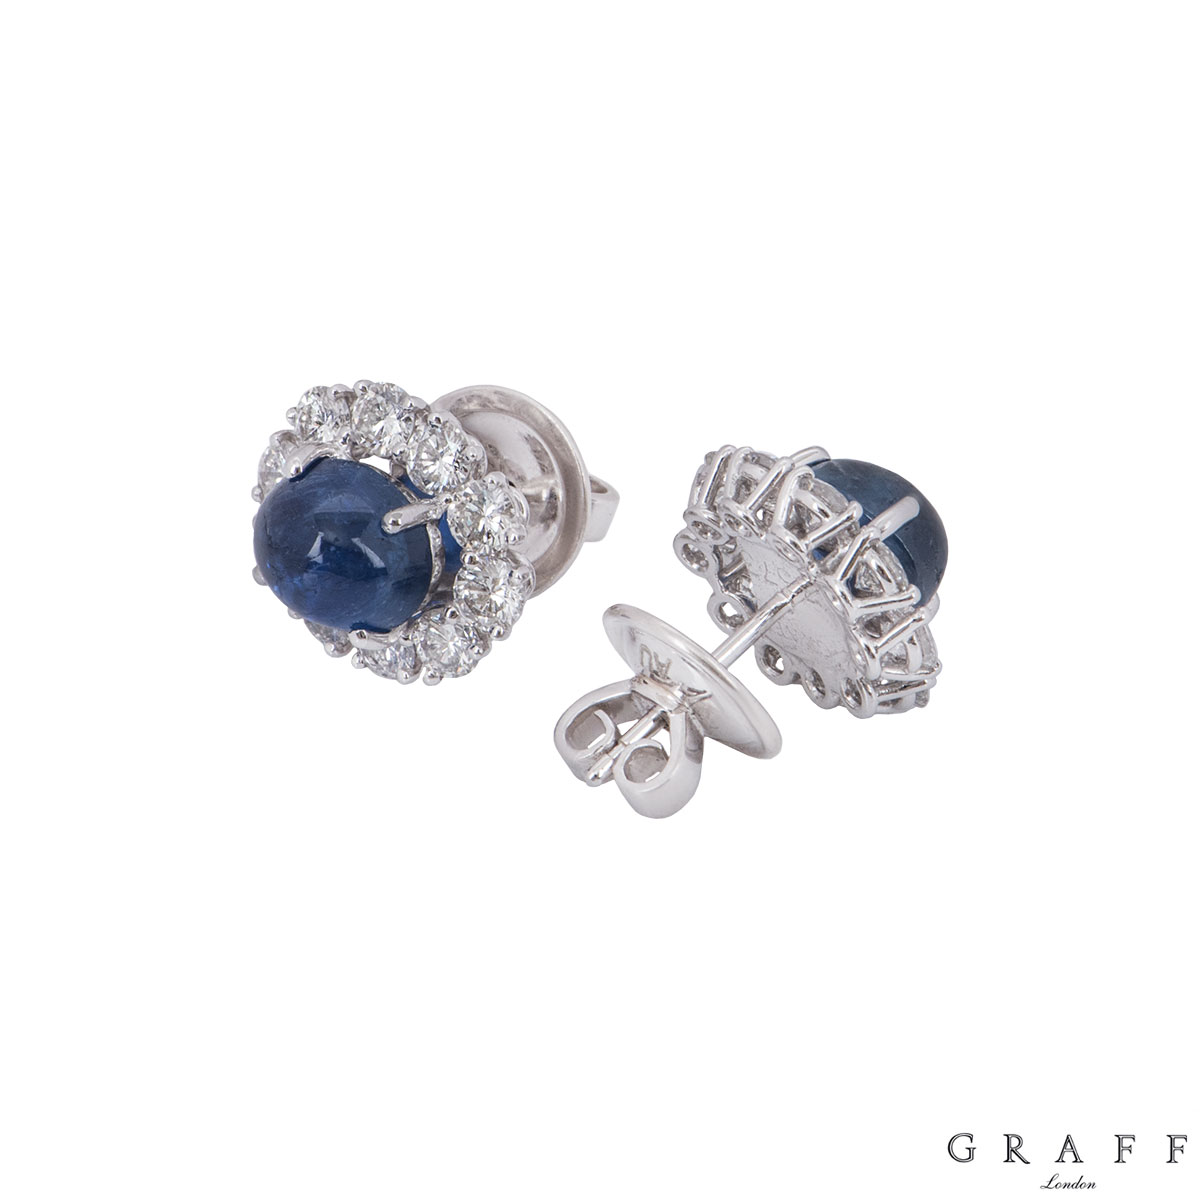 Graff White Gold Diamond And Sapphire Earrings